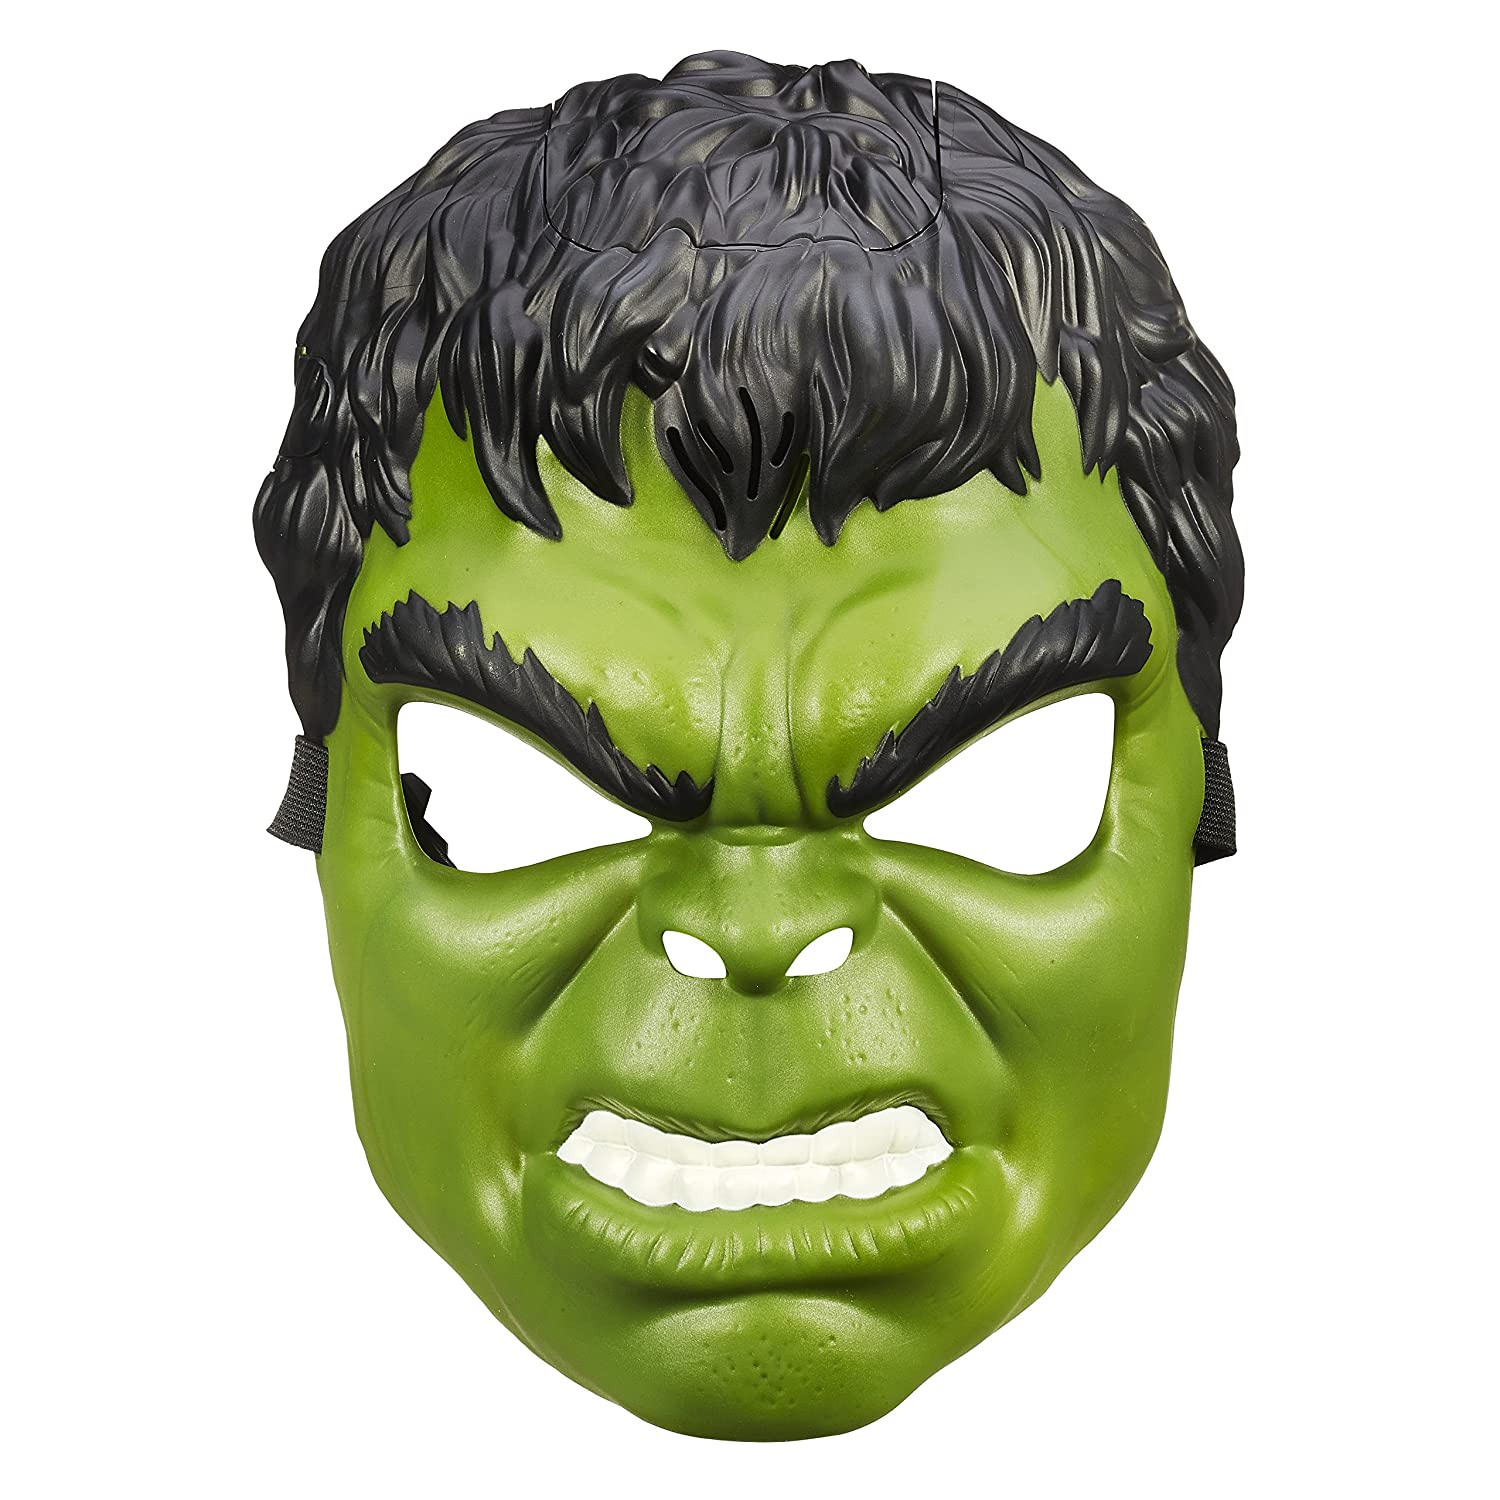 MARVEL - HULK - MÁSCARA CON MODULADOR VOZ / MASK WITH VOICE CHANGER - HULK: Amazon.es: Juguetes y juegos